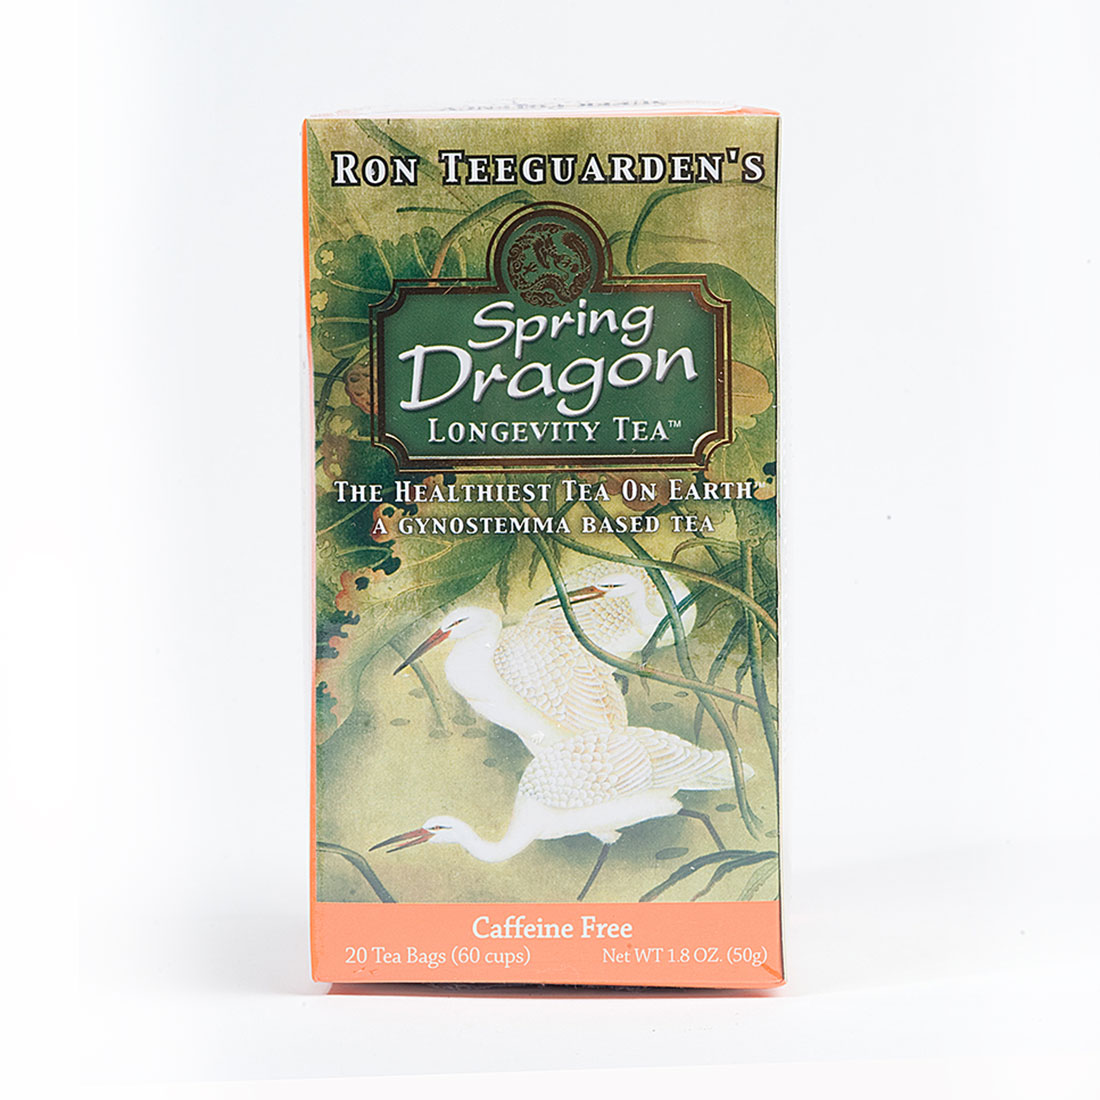 Spring Dragon Longevity Tea The Healthiest Tea On Earth